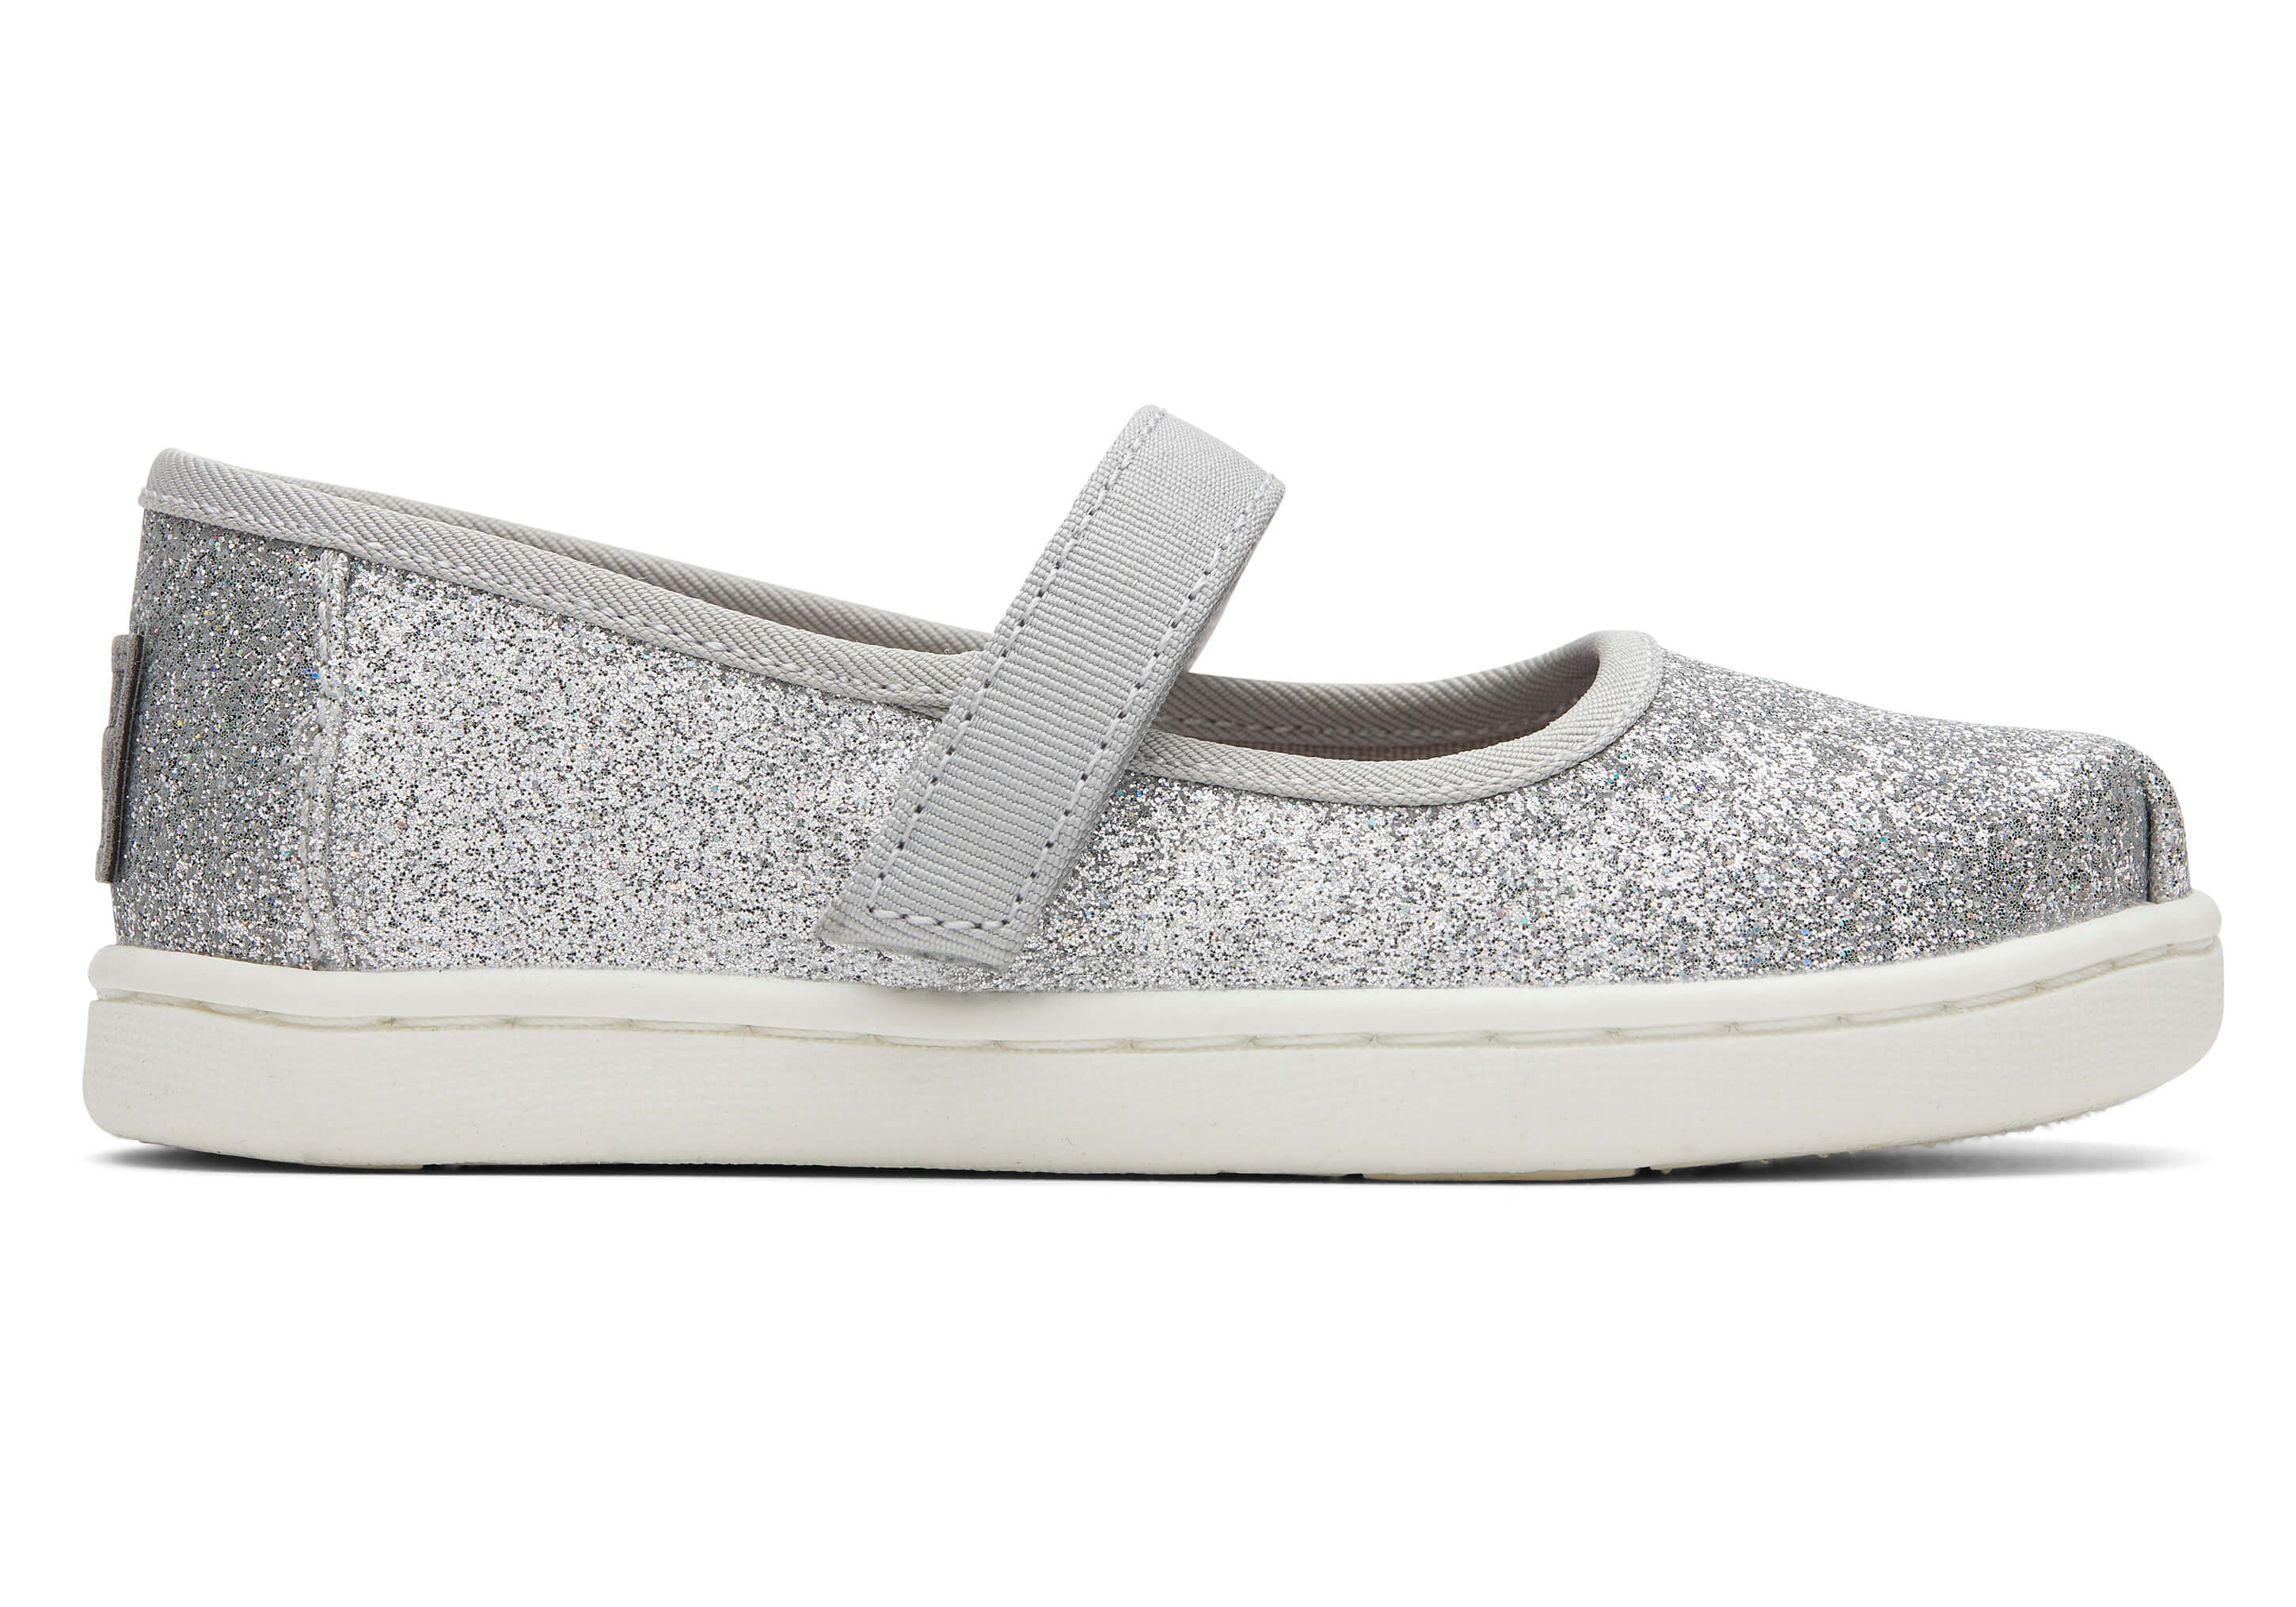 Silver Iridescent Glimmer Tiny TOMS